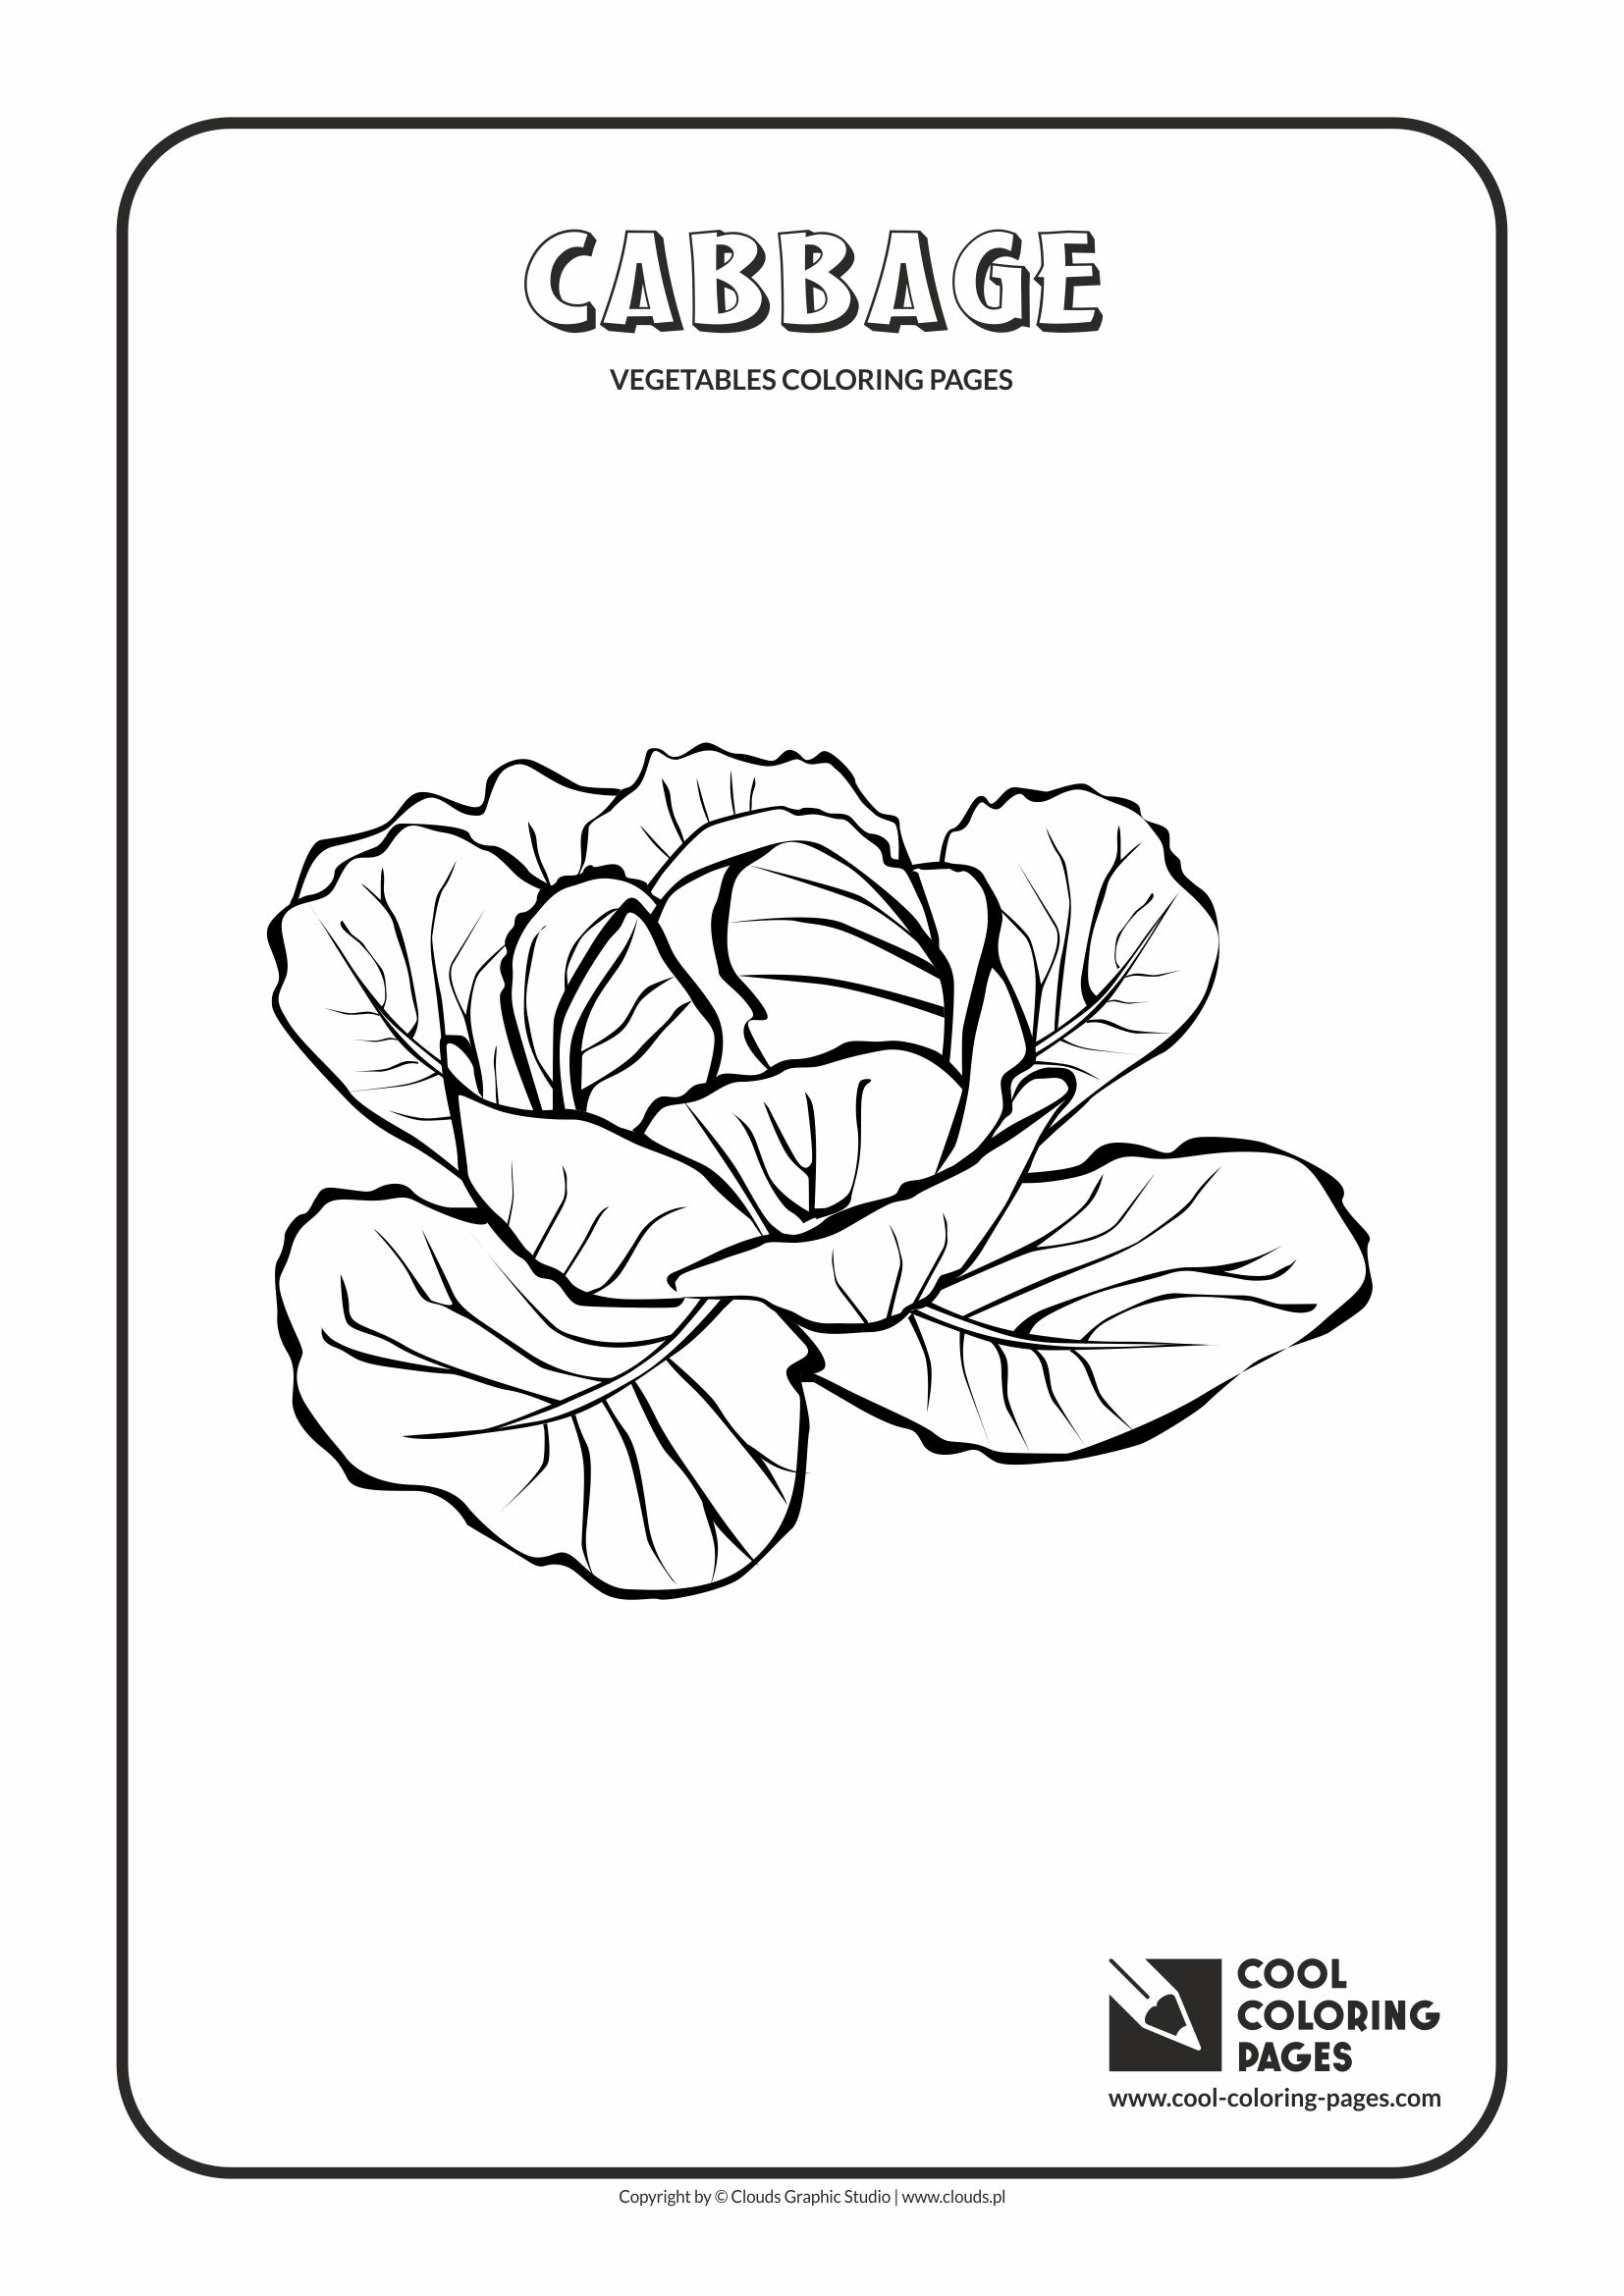 Cool Coloring Pages - Plants / Cabbage / Coloring page with cabbage